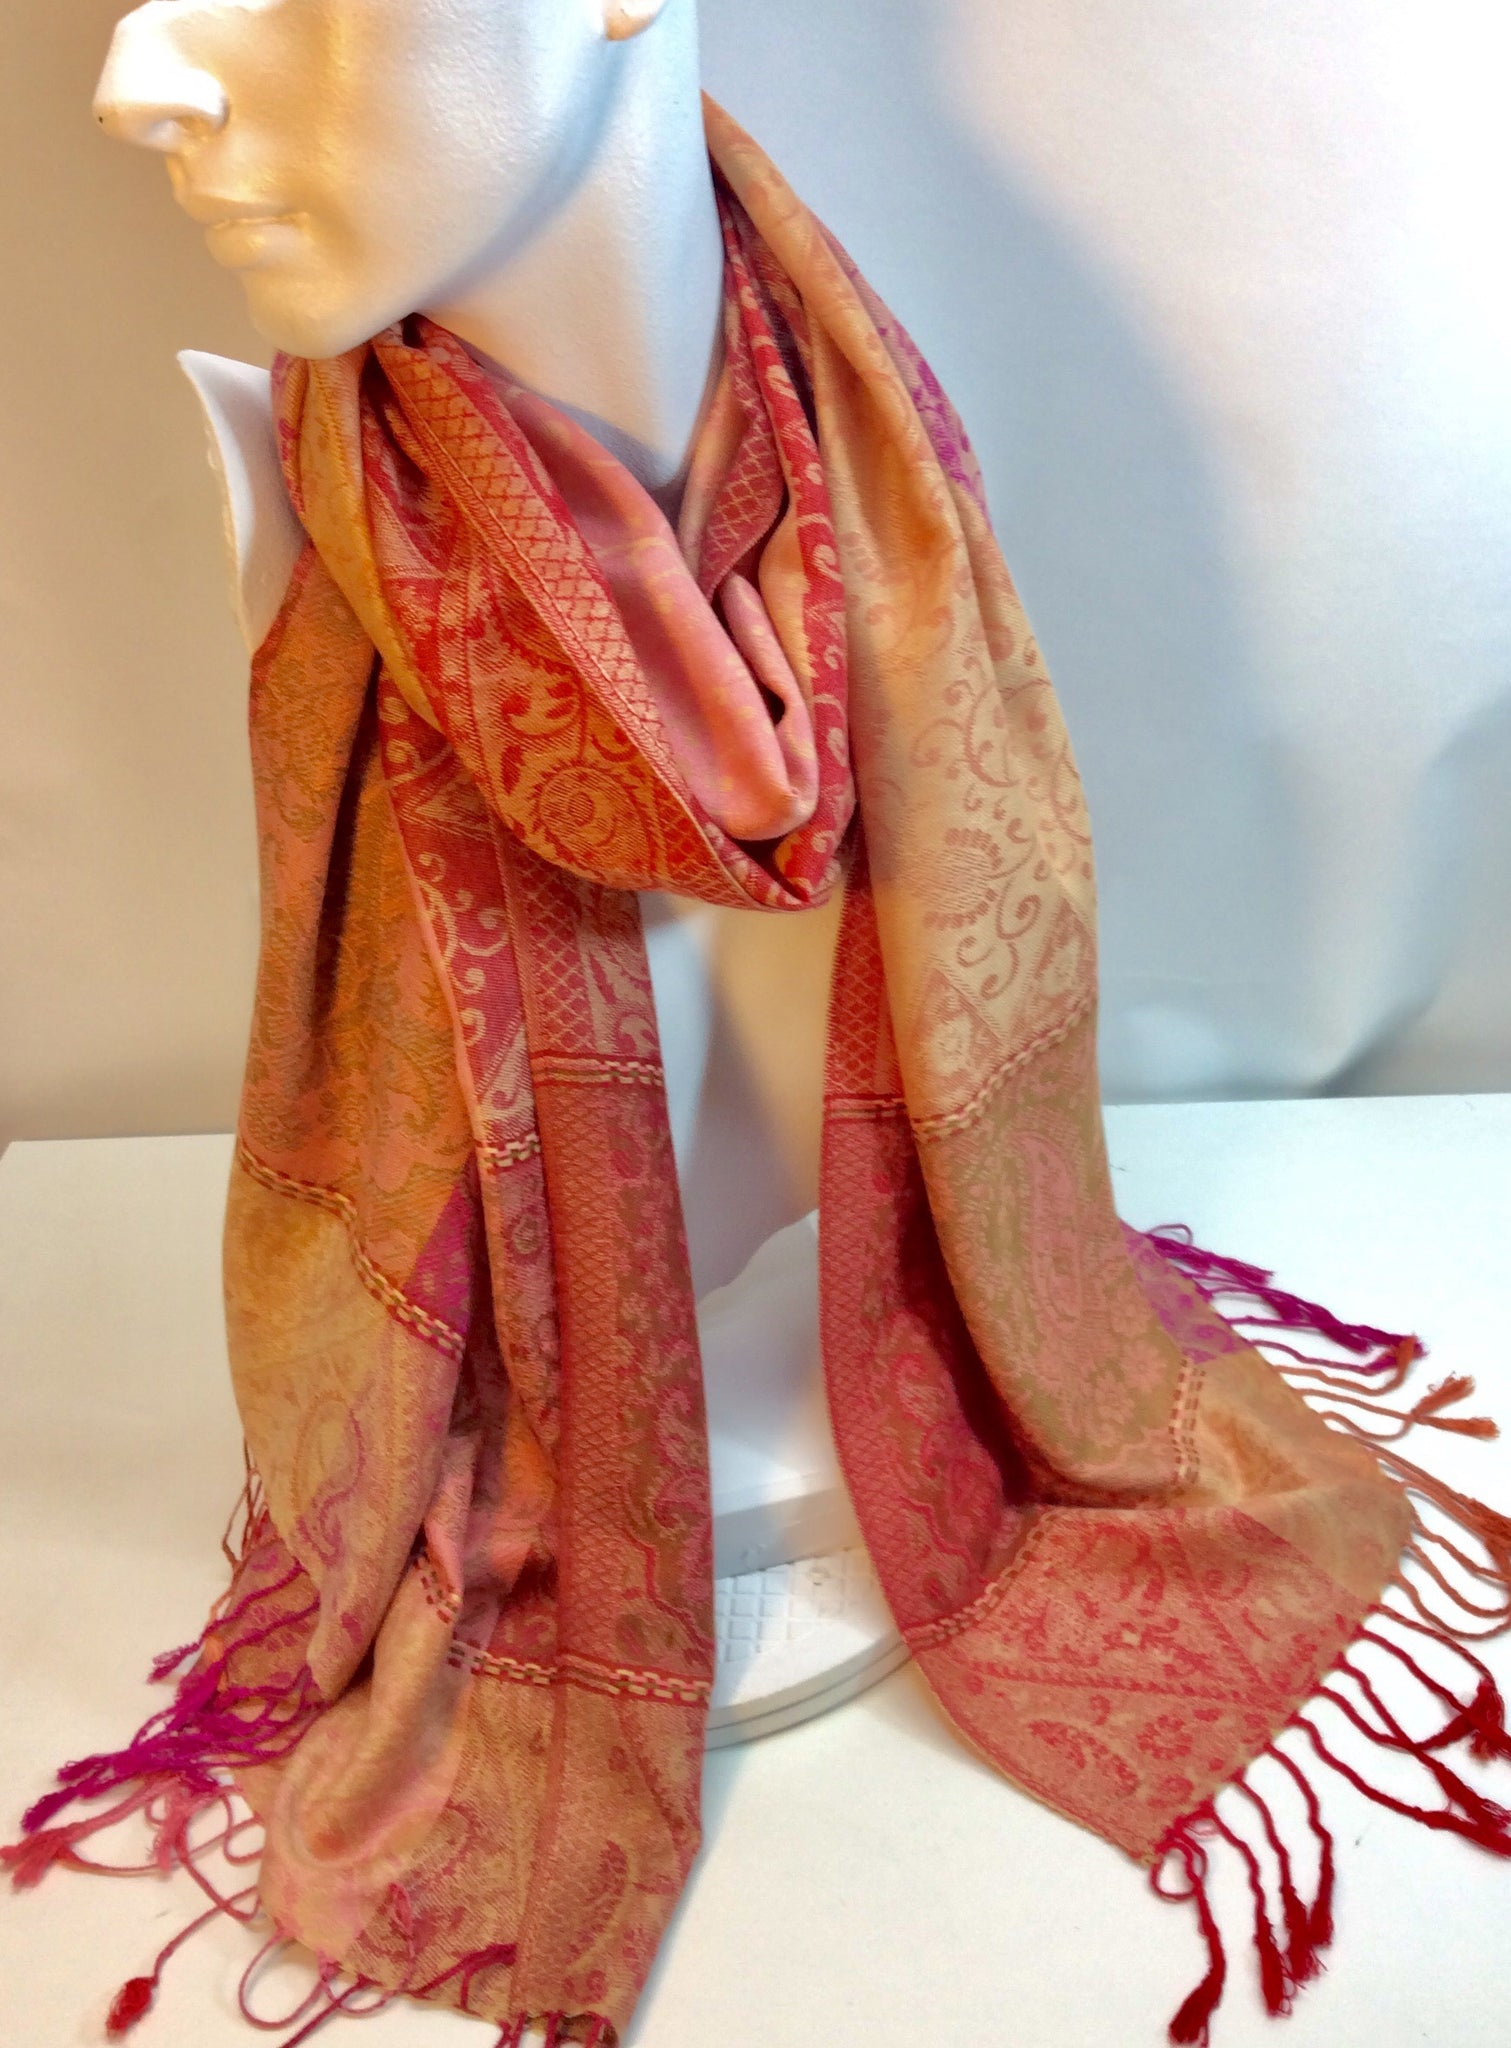 Orange pink and red paisley patterned scarf